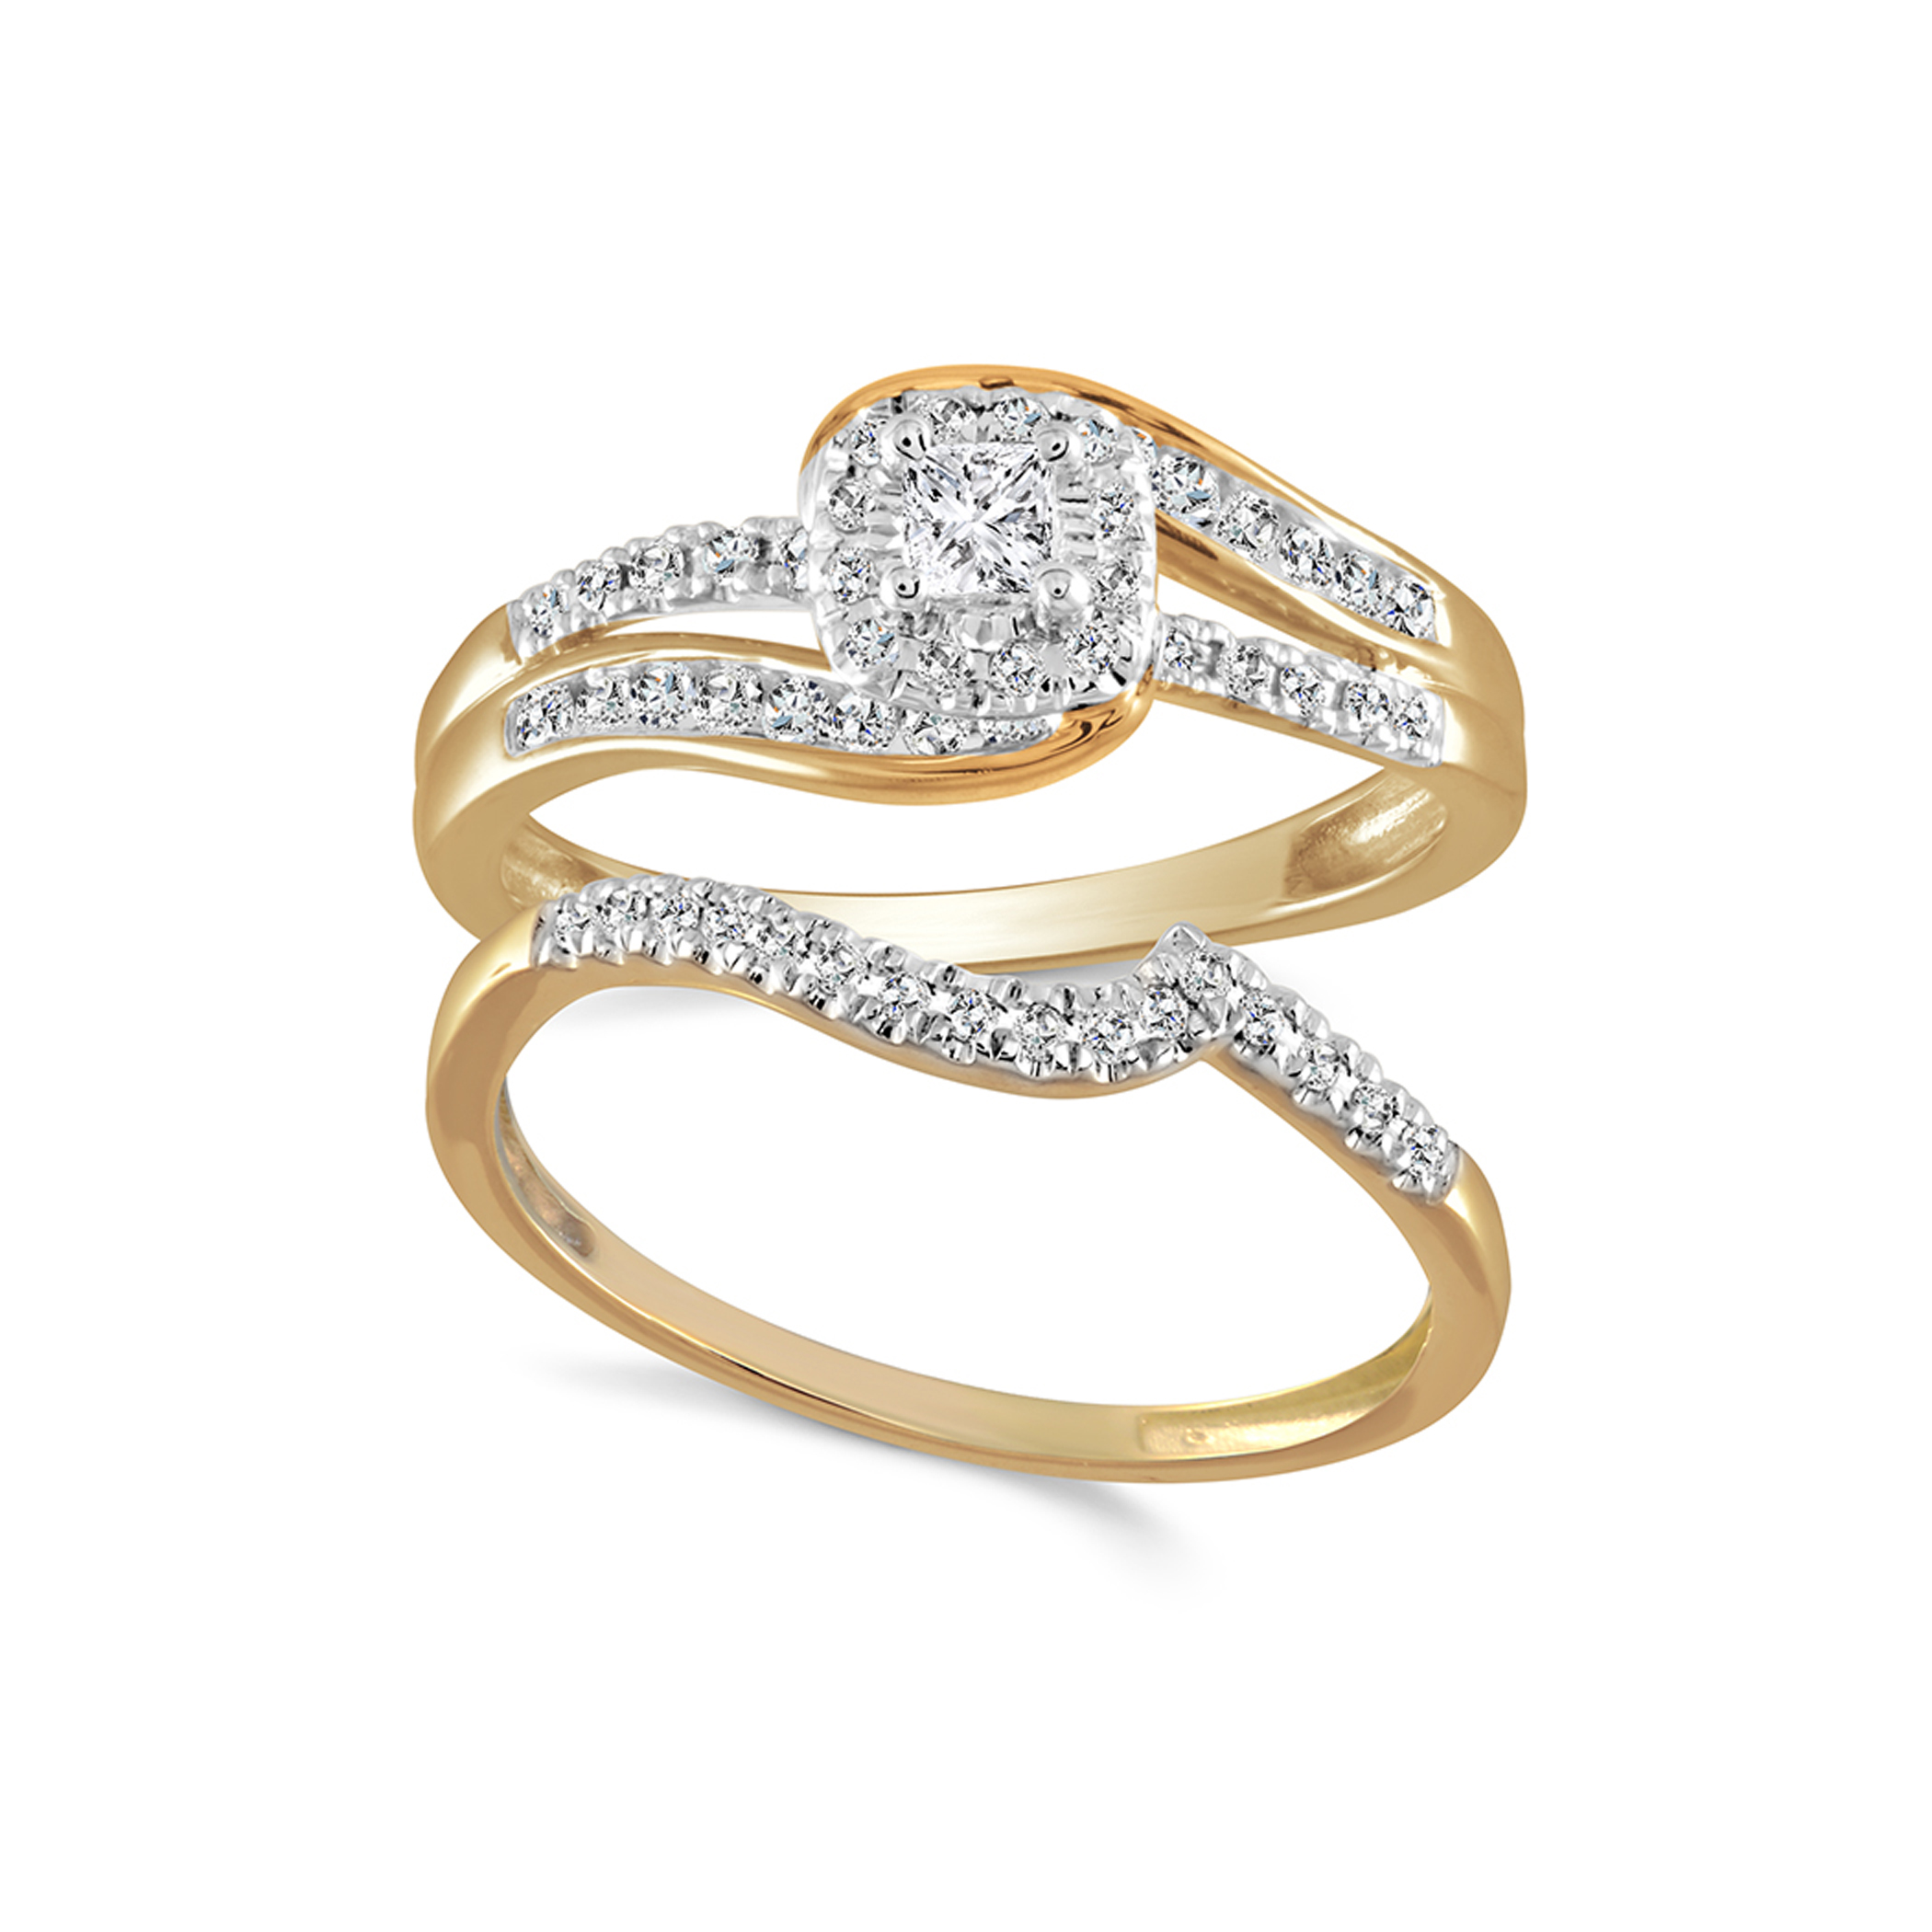 Engagement ring and wedding band set - 10K yellow Gold & Diamonds 0.50 Carat T.W.